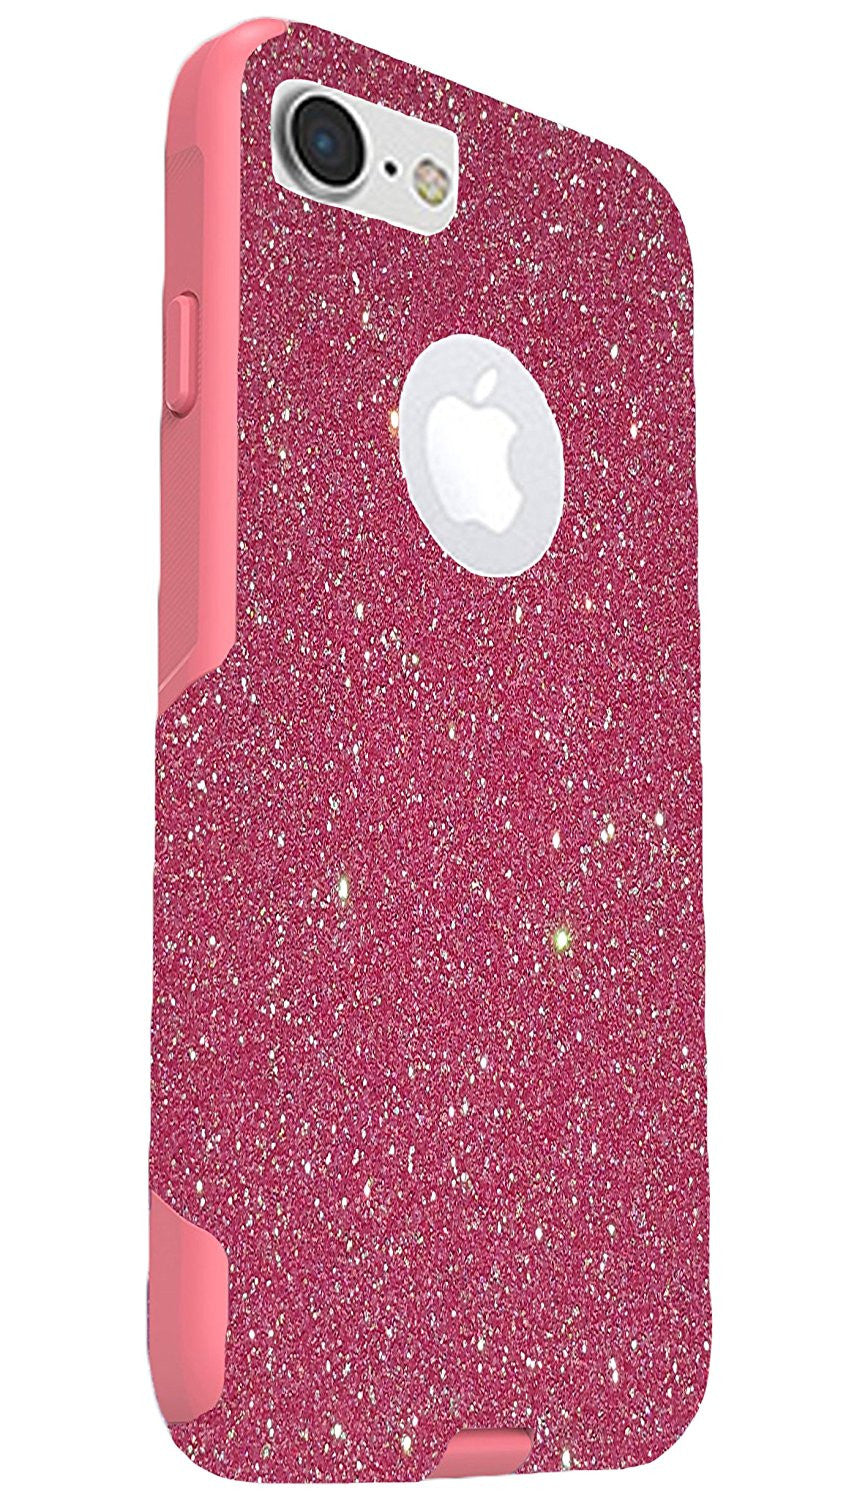 otterbox iphone 7 plus case glitter